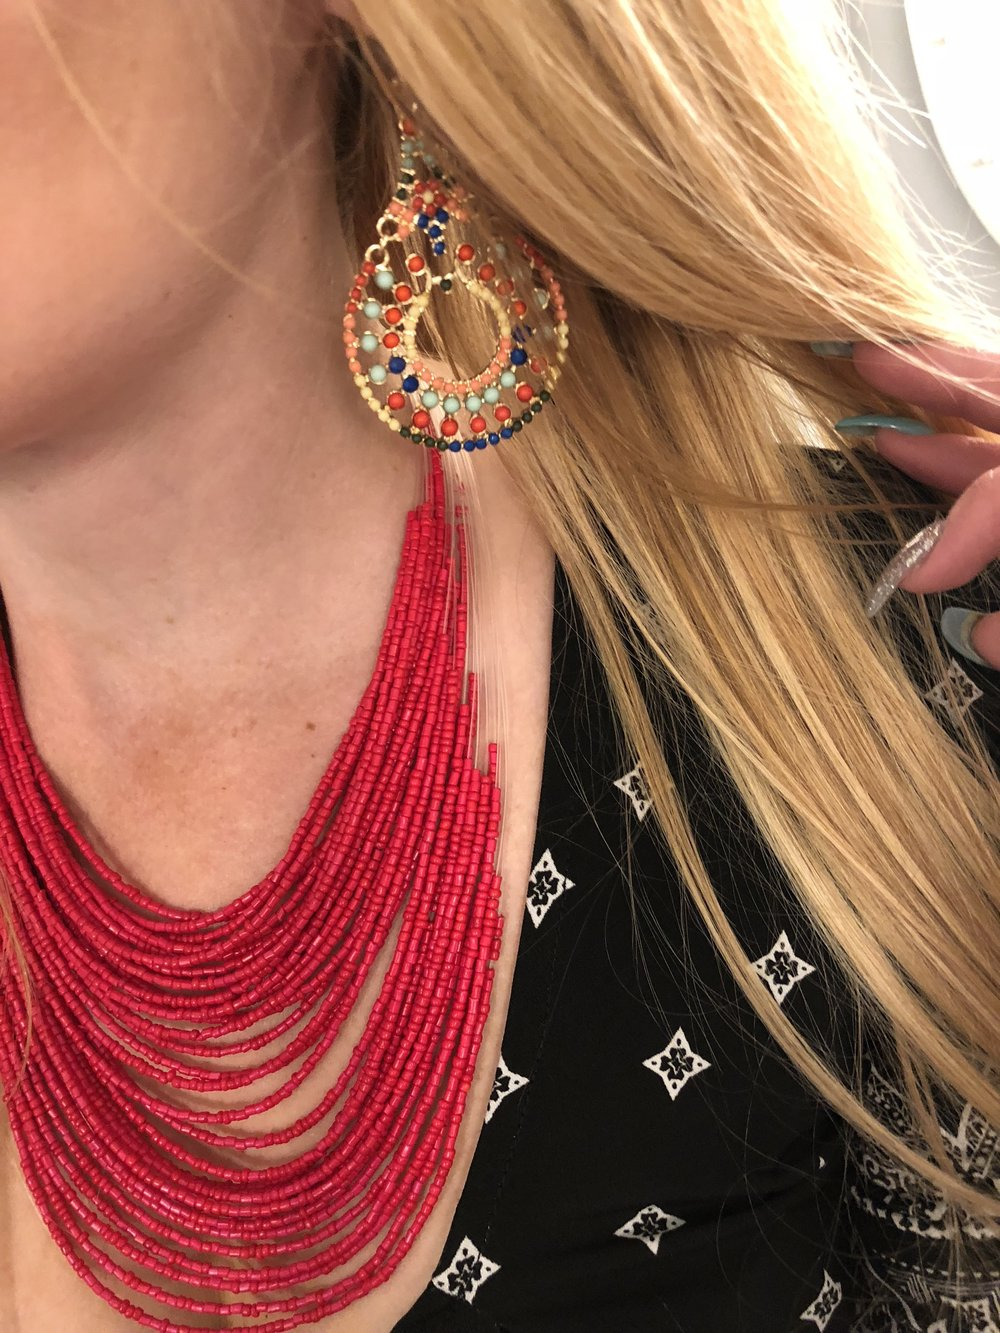 These are an older pair, but I think they are perfect for the statement earring trend this year!  I've linked up some similar ones below for a bold, primary color look.